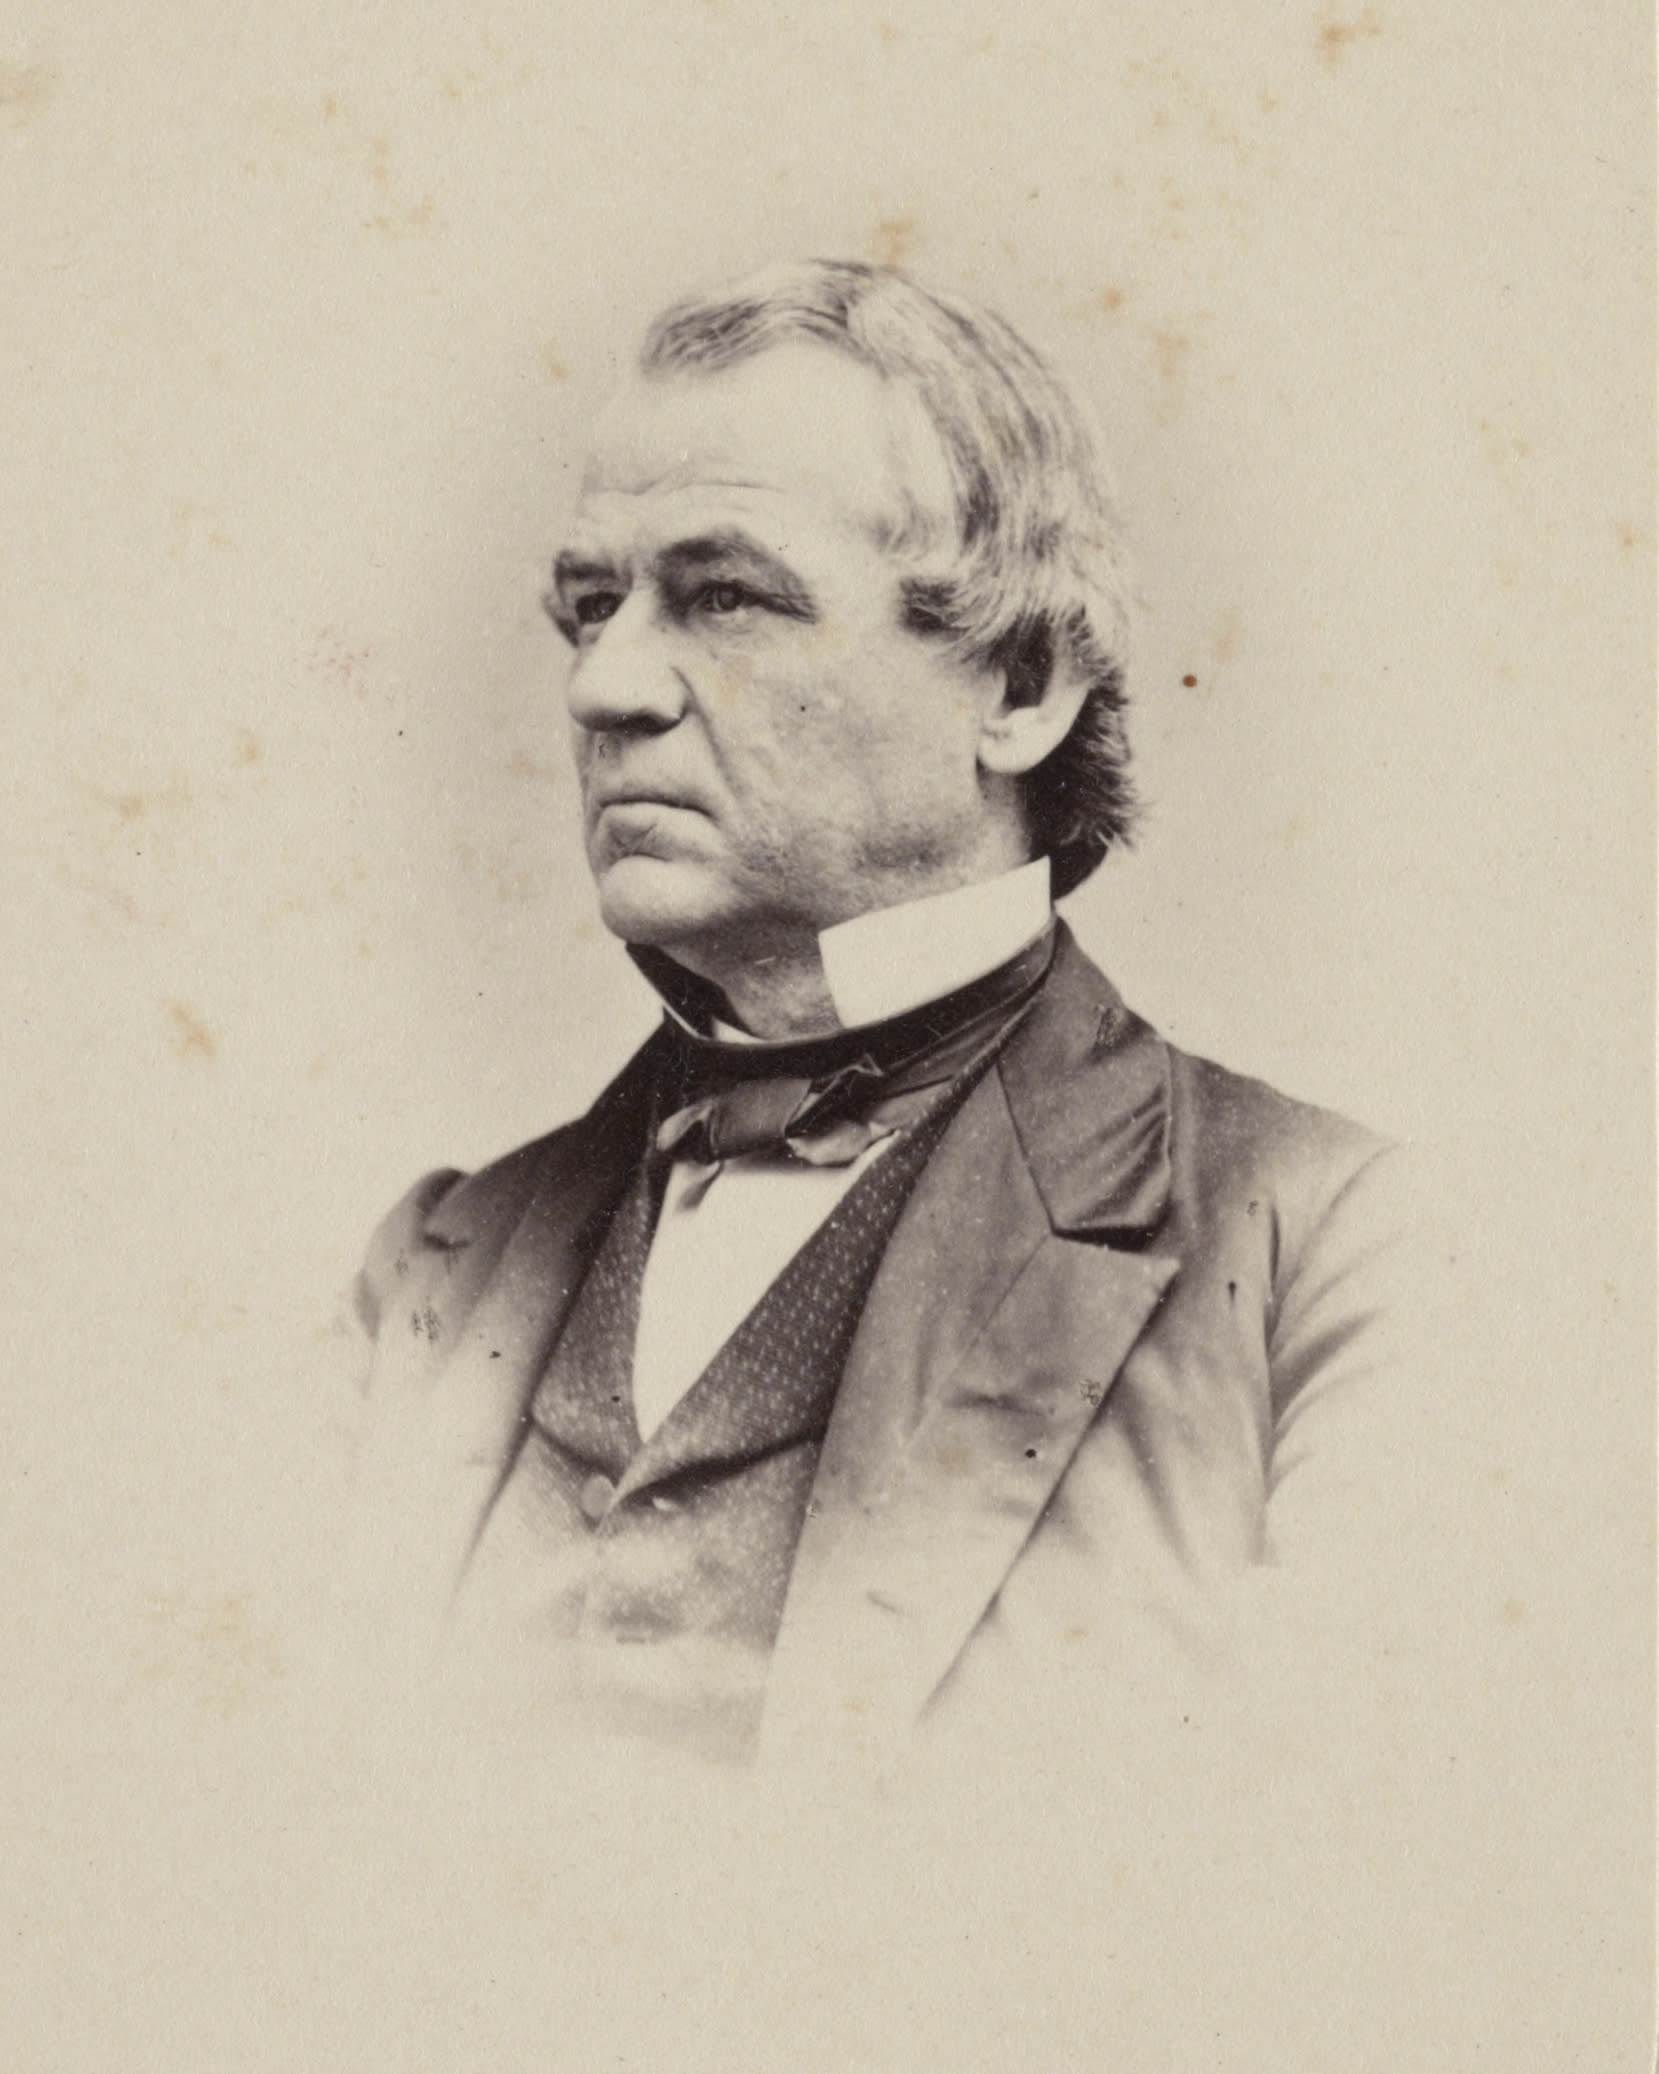 This 1860-1875 photo made available by the Library of Congress shows Andrew Johnson. Johnson, a Democrat, became vice president under Republican Abraham Lincoln on a unity ticket elected amid the Civil War in 1864. He became president after Lincoln's assassination in April 1865. (Library of Congress via AP)